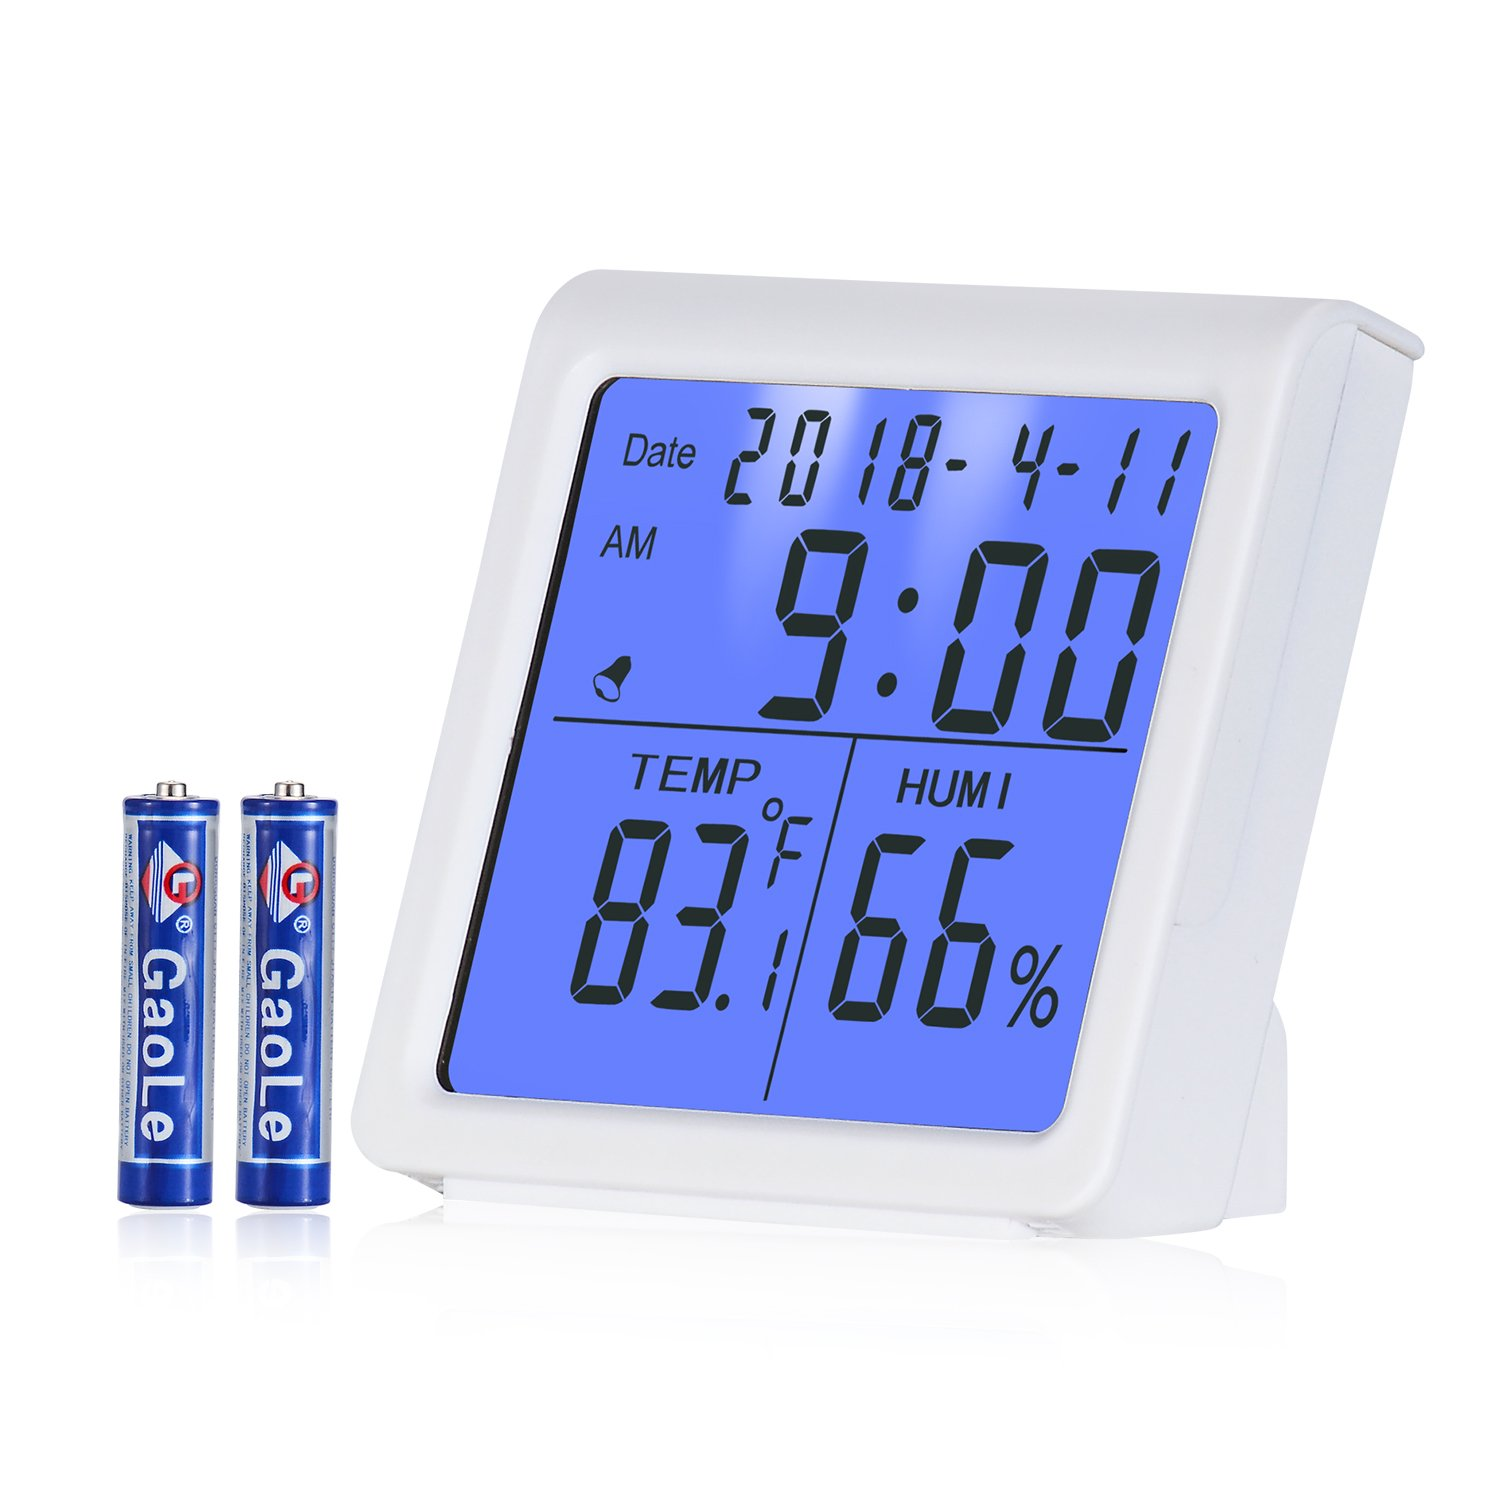 AE Life Temperature Humidity Gauge, Indoor Thermometer Hygrometer with Digital Alarm Clock, Backlit Accurate Monitor Clear Reading, Min/Max Records, °C/°F switch, Calendar, Time Display - White °C/°F switch